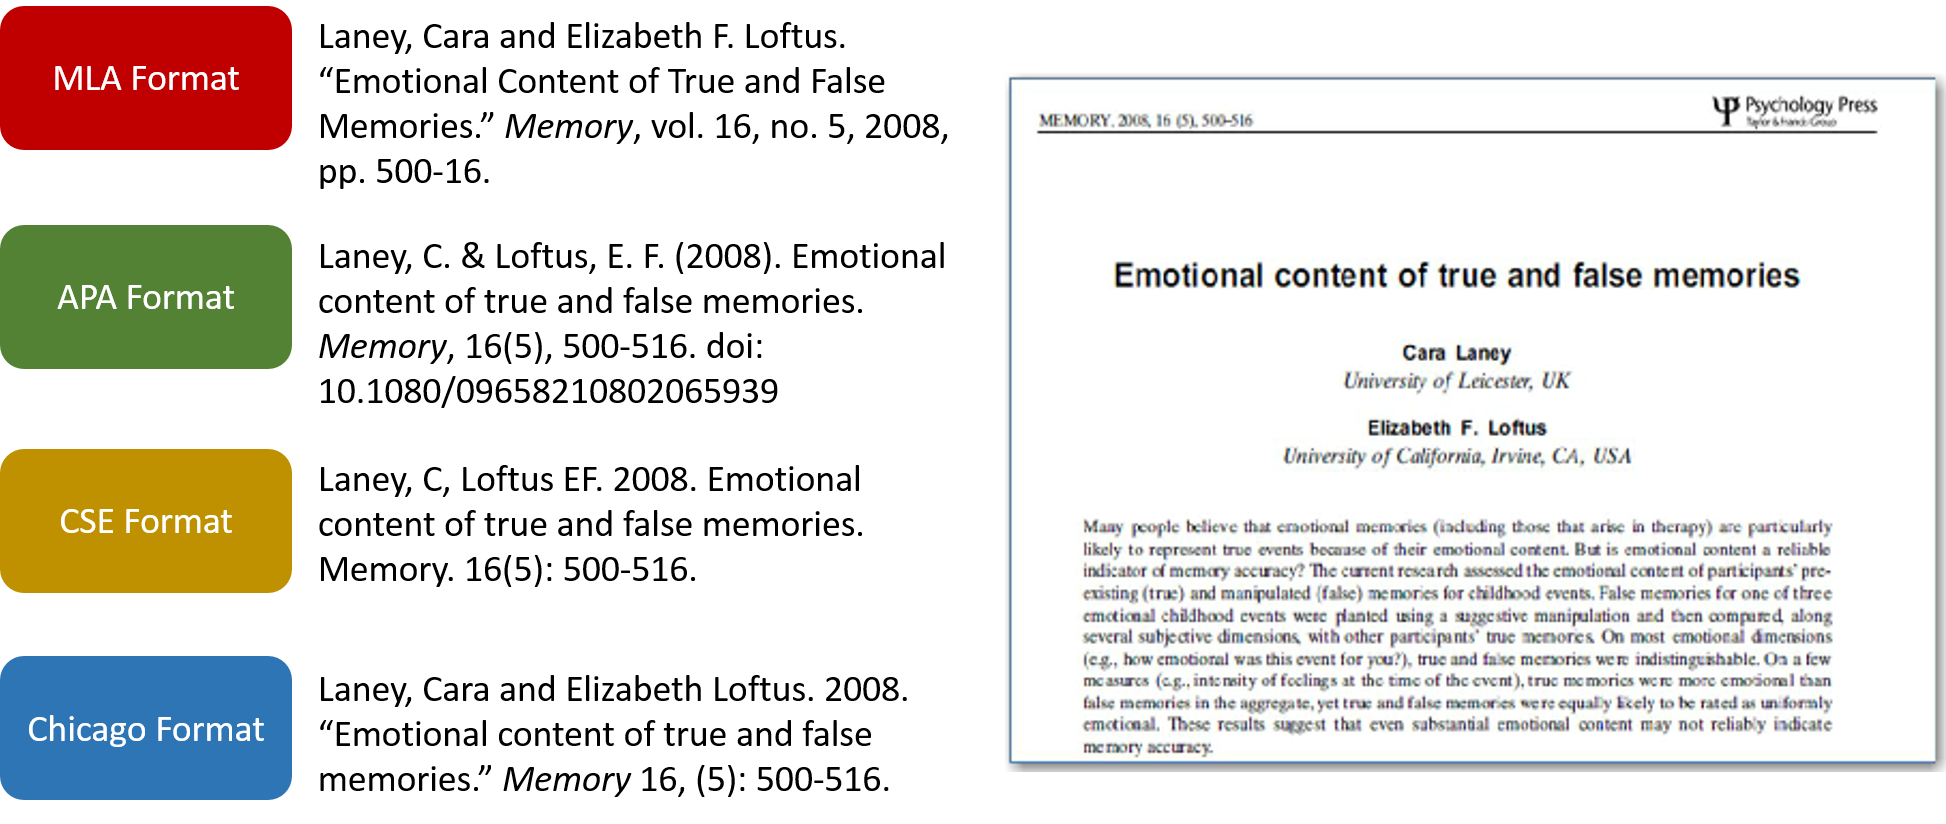 "citations in different formats. MLA = Laney, Cara and Elizabeth F. Loftus. ""Emotional Content of True and False Memories."" Memory 16.5 (2008): 500-516. Print. ; APA = Laney, C. & Loftus, E. F. (2008). Emotional content of true and false memories. Memory, 16(5), 500-516. doi: 10.1080/09658210802065939 ; CSE = Laney, C, Loftus EF. 2008. Emotional content of true and false memories. Memory. 16(5): 500-516. ; Chicago = Laney, Cara and Elizabeth Loftus. 2008. ""Emotional content of true and false memories."" Memory 16, (5): 500-516."